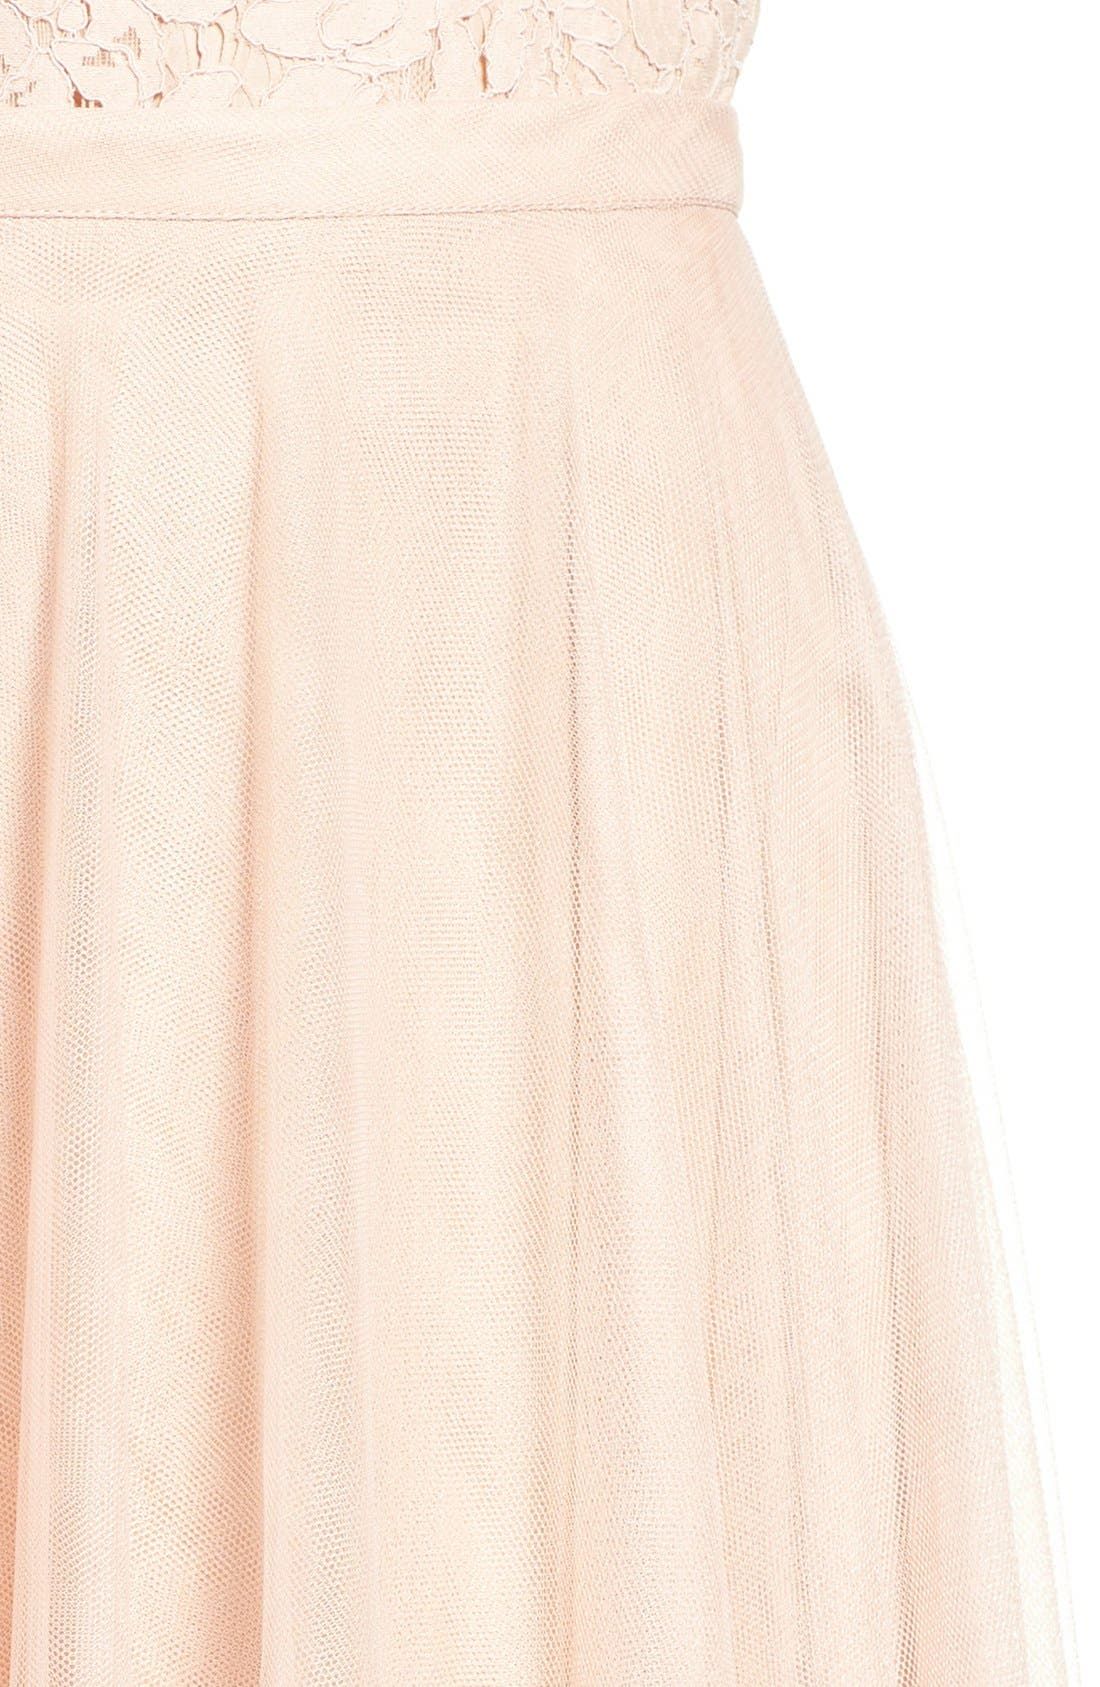 Winslow Long Tulle A-Line Skirt,                             Alternate thumbnail 10, color,                             CAMEO PINK